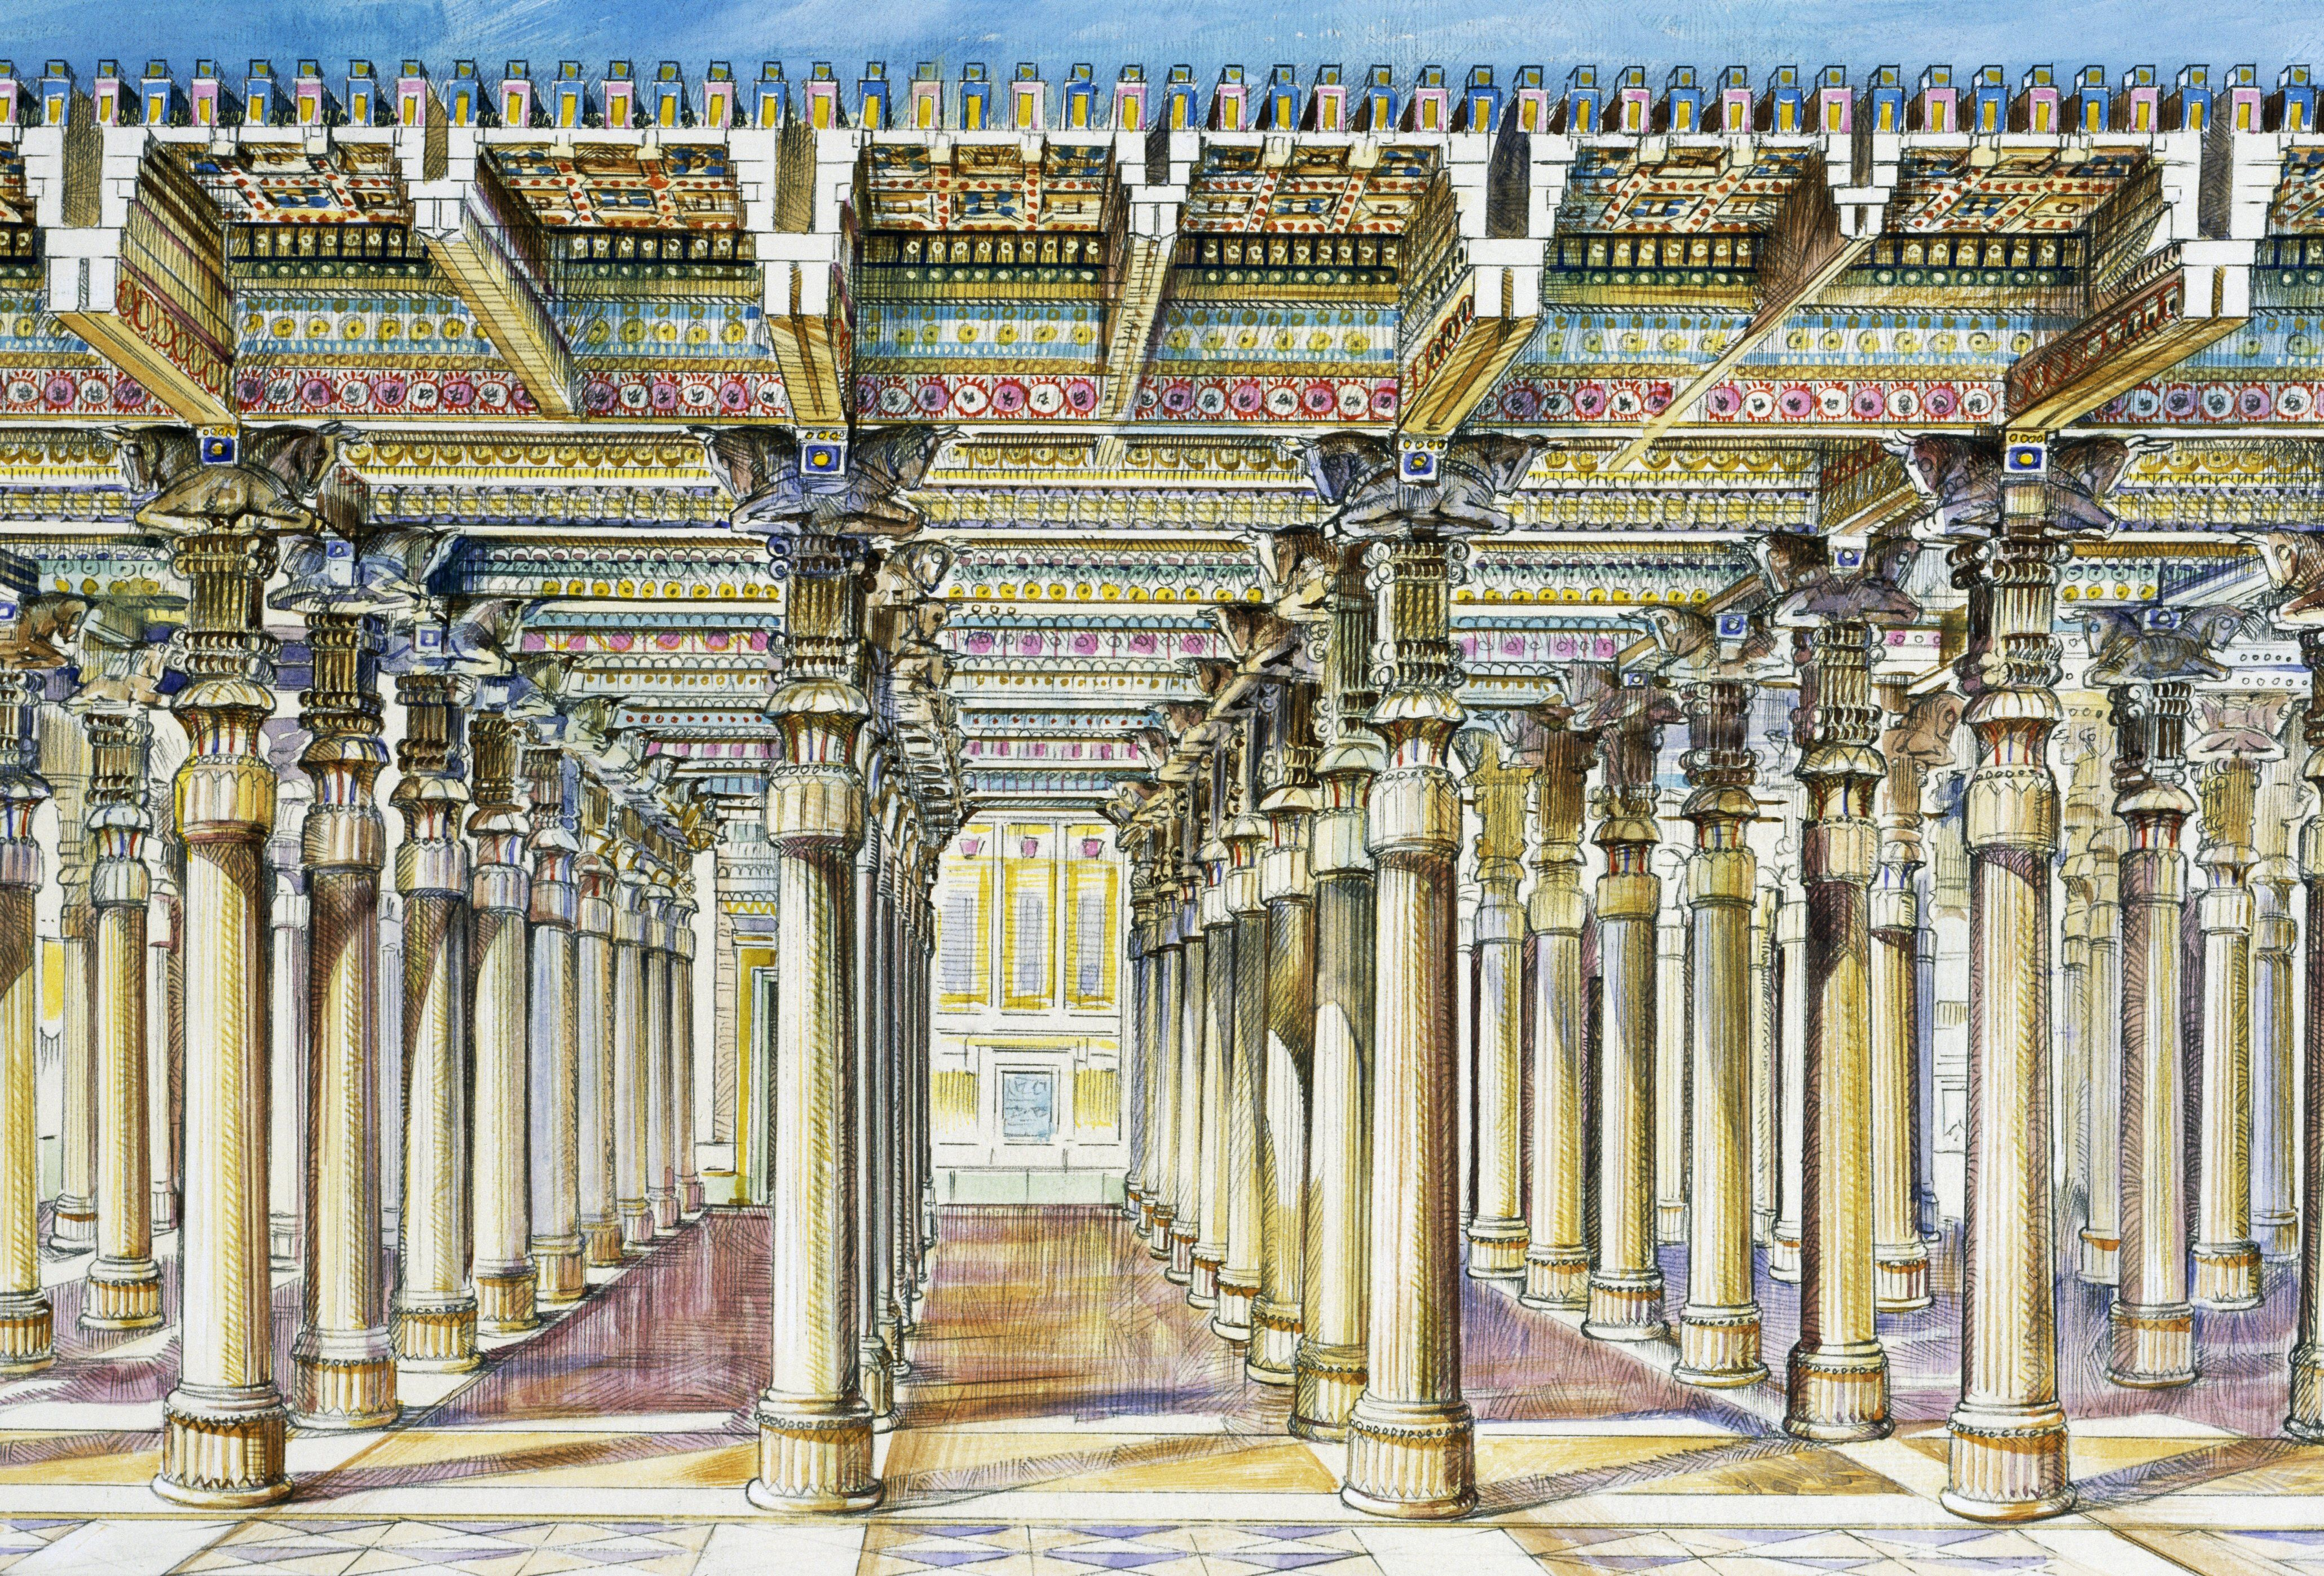 conjectured look of ancient hall filled with columns and colorful mosaics